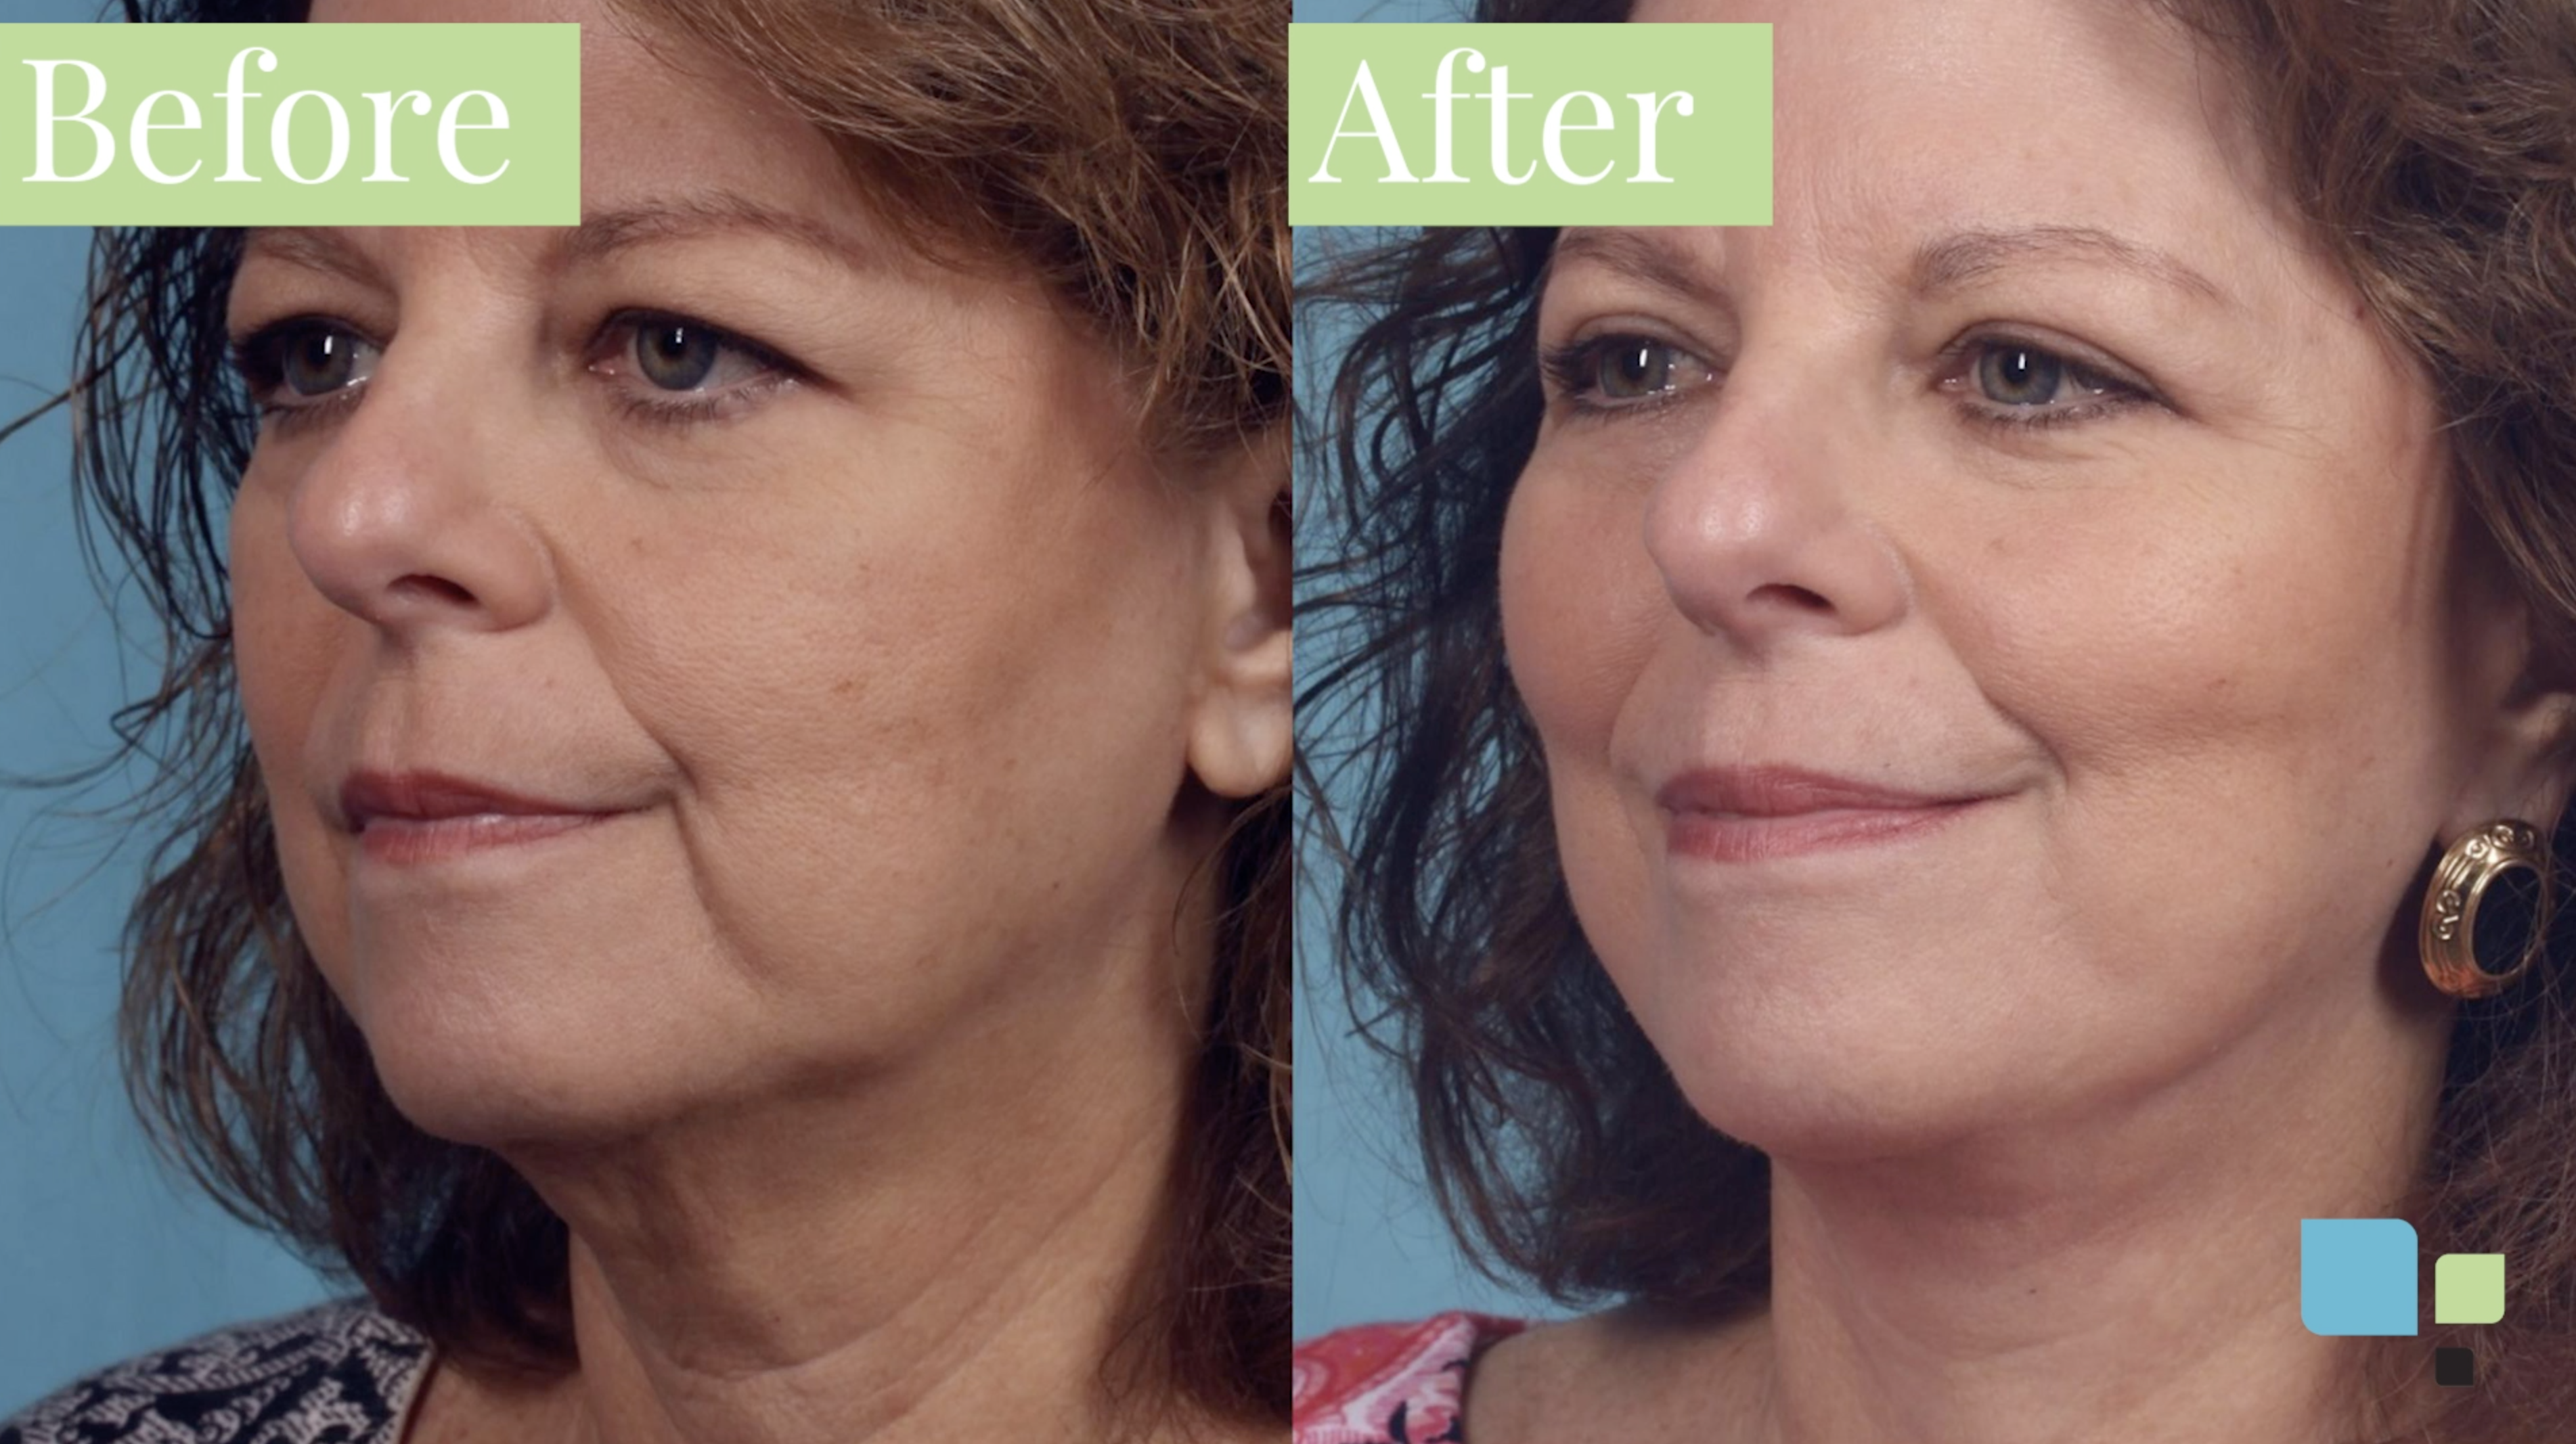 Blepharoplasty before and after photos actual patient